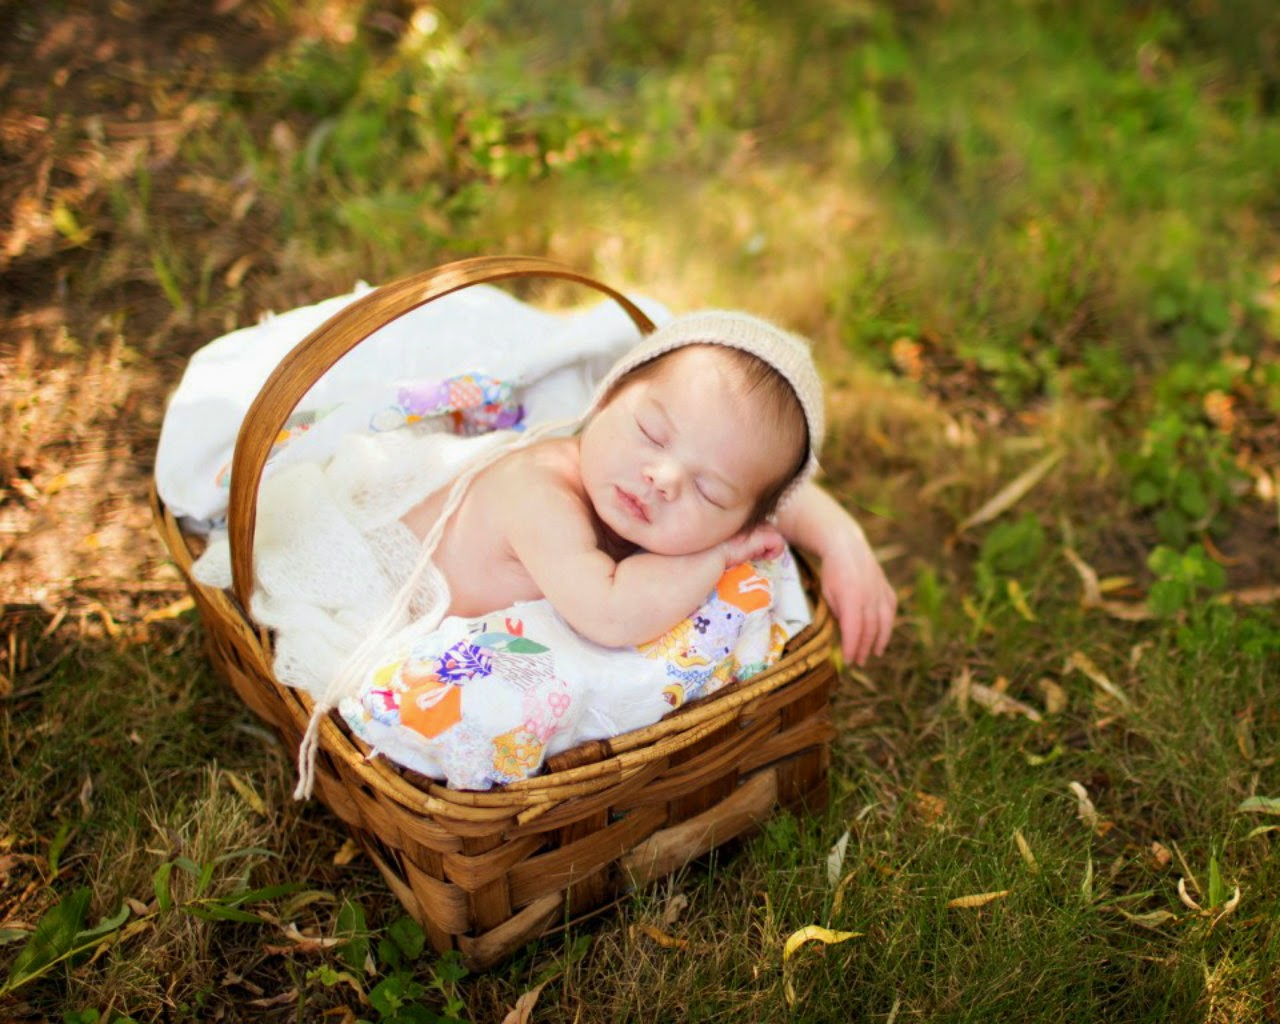 Baby-cute-sleep-in-basket-beautiful-photos-for-facebook.jpg